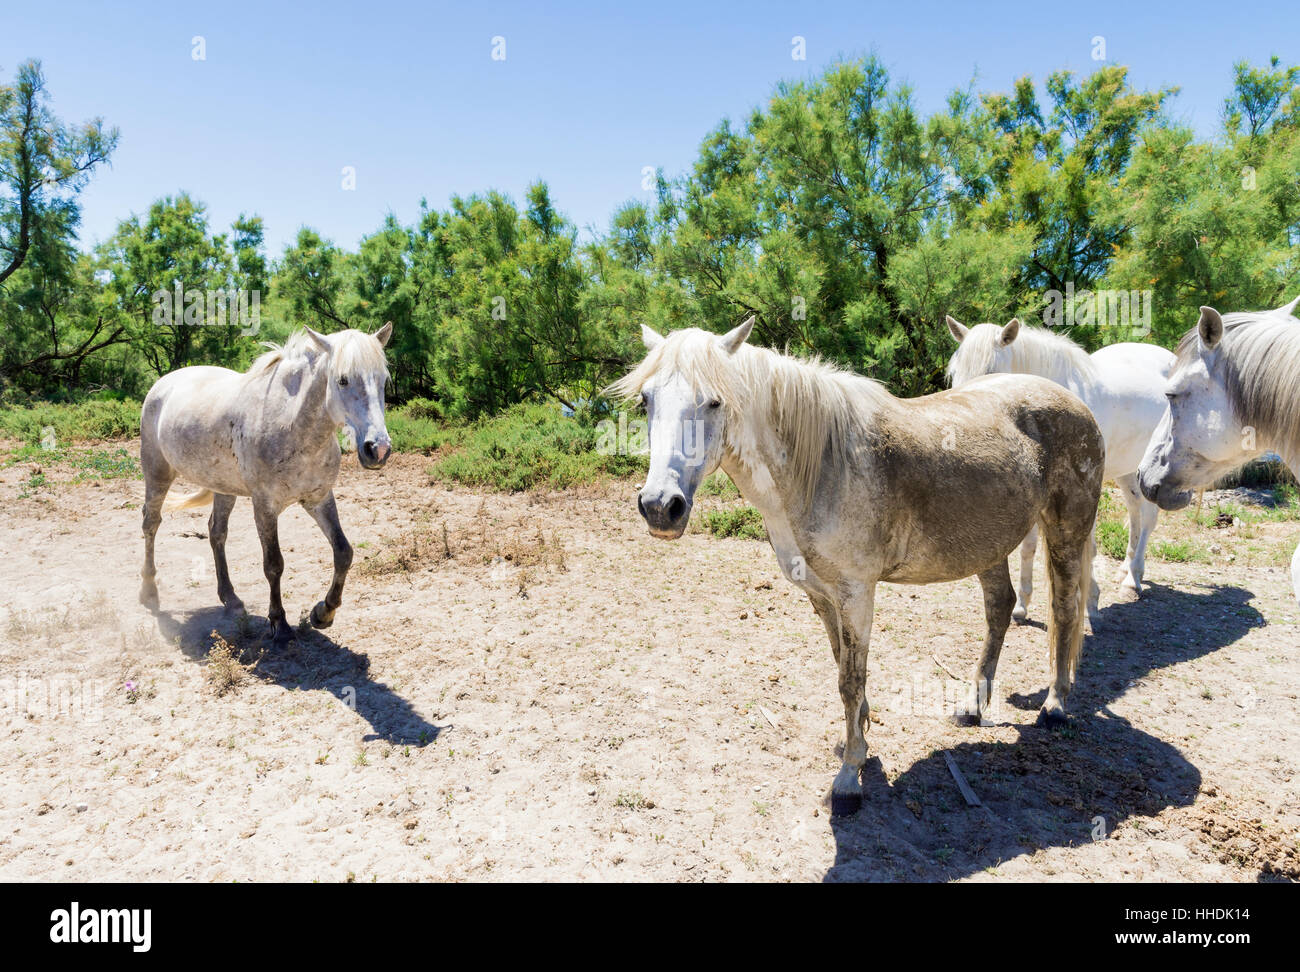 Wild Camargue Horses, in the Camargue Regional Nature Park in the  Rhône Delta, Southern France - Stock Image